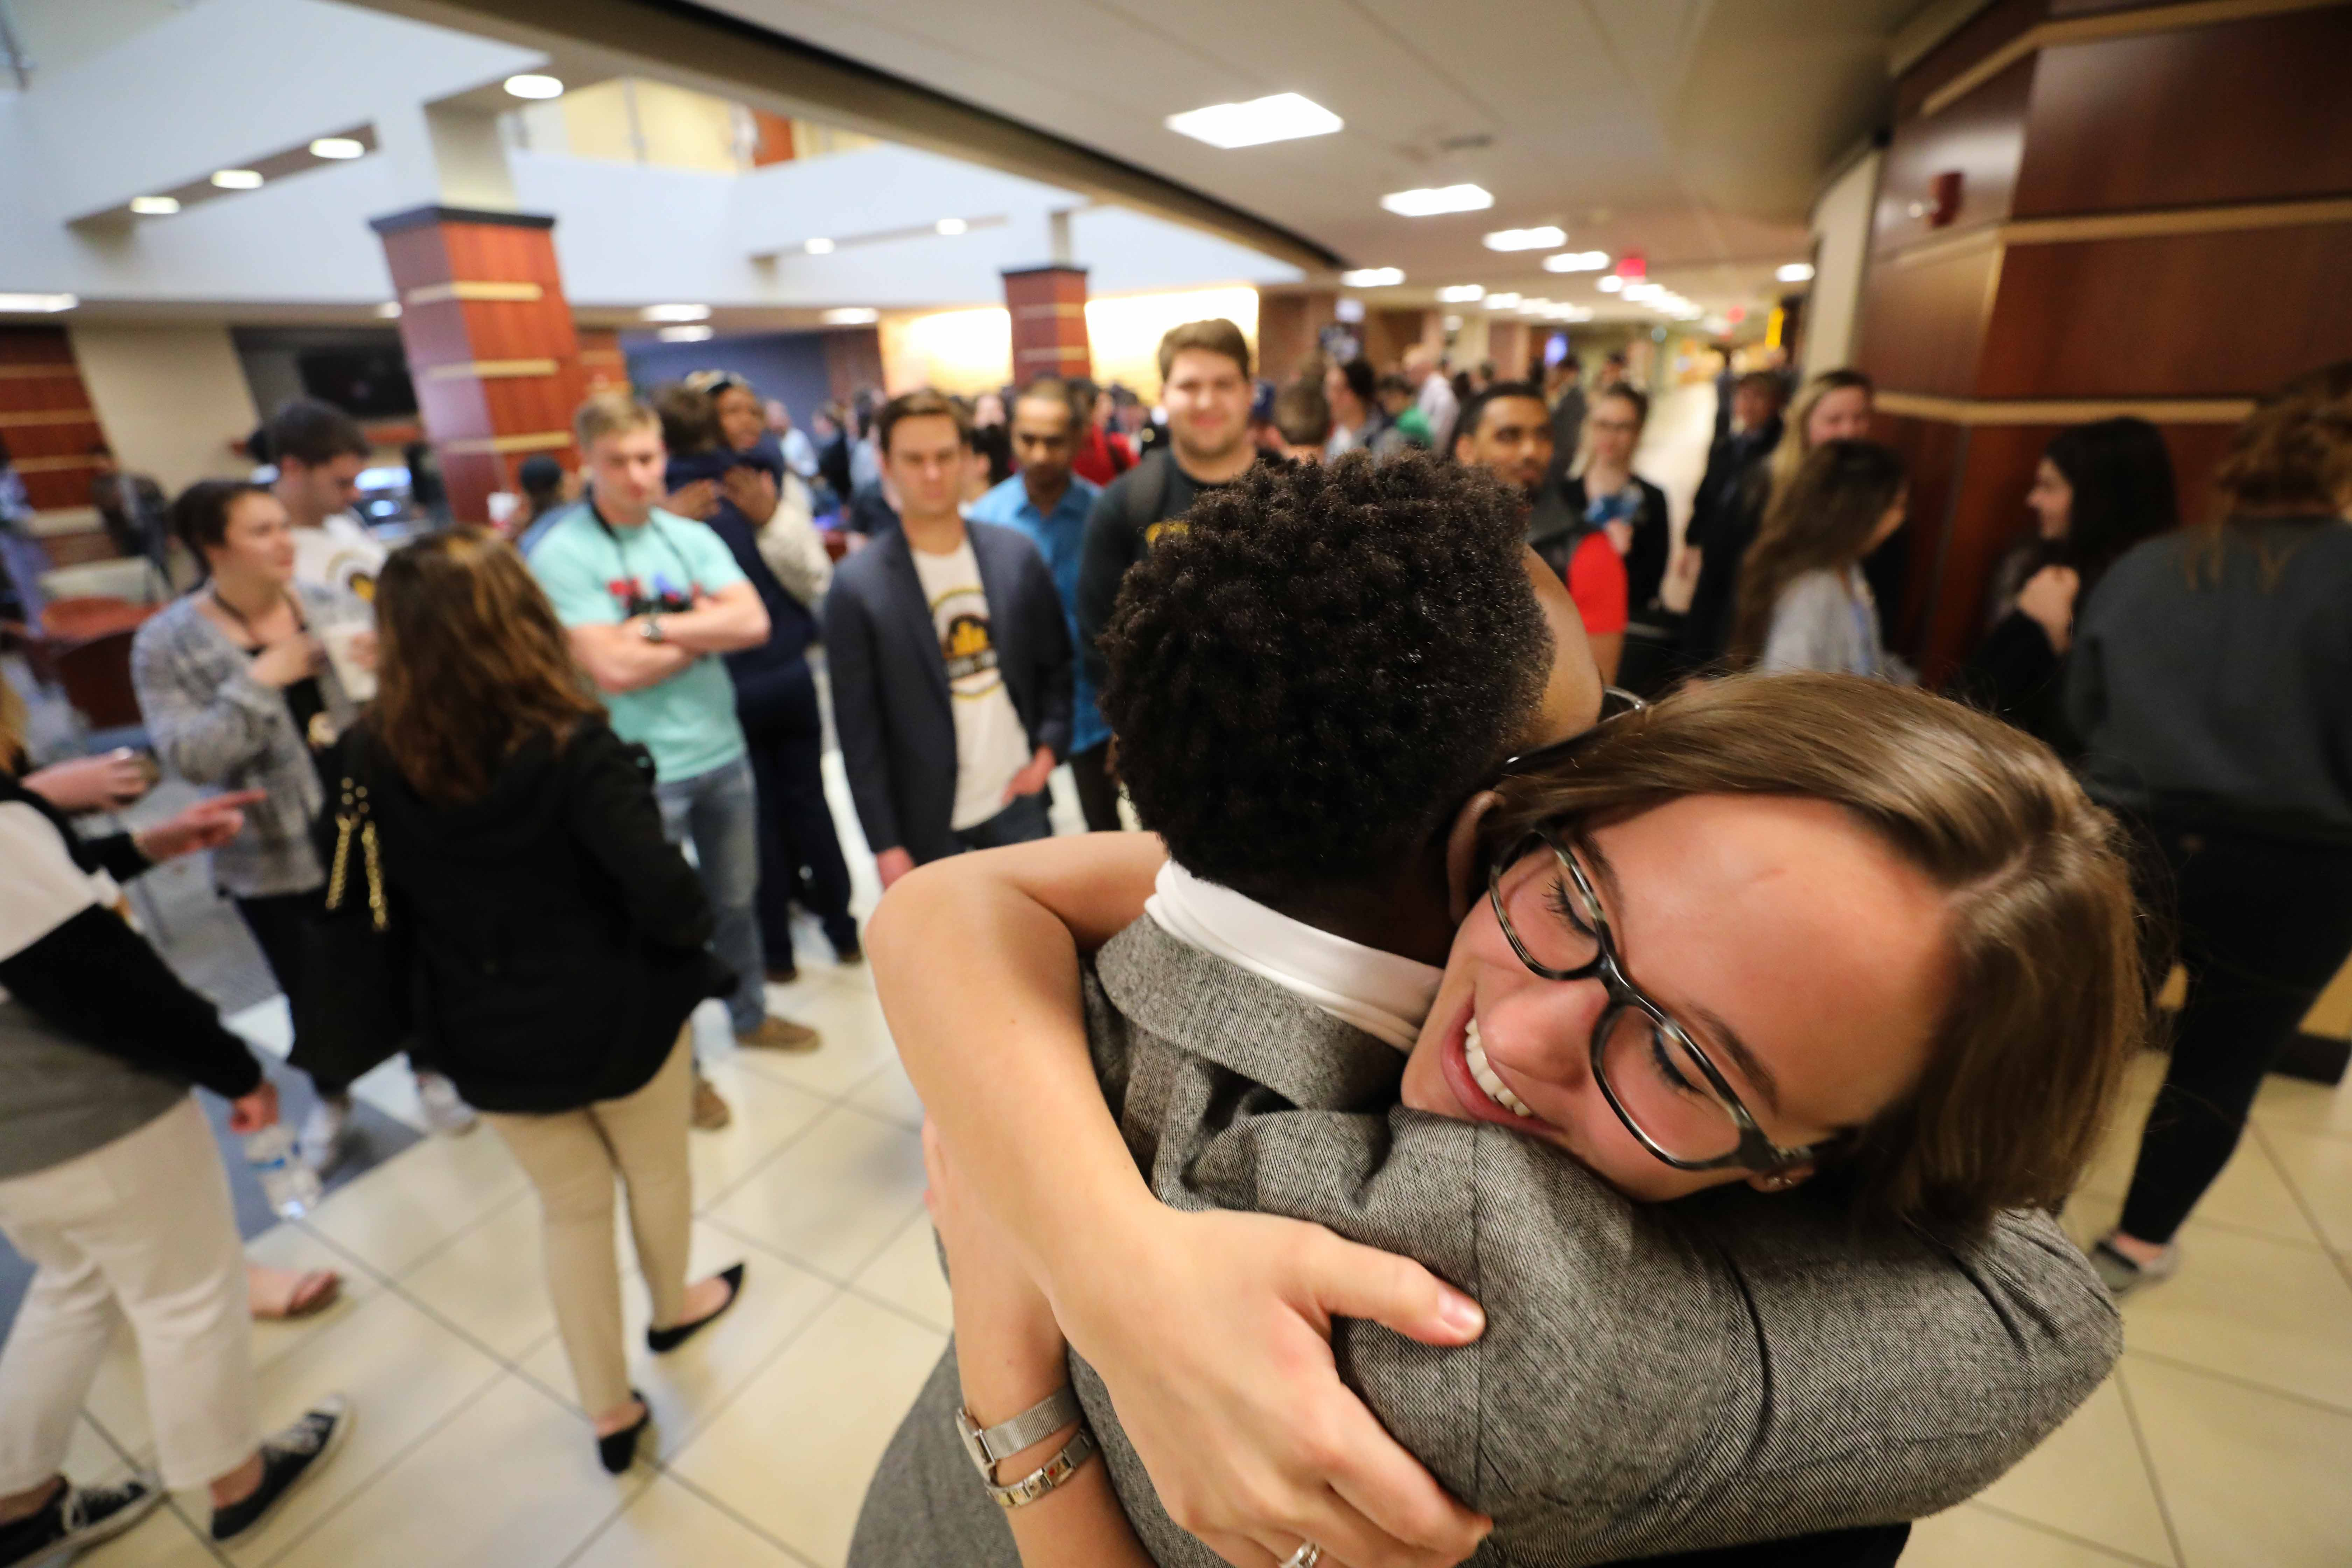 SGA President Joseph Shepard and President-elect Paige Hungate hug after the announcement of her SGA election victory in the RSC.